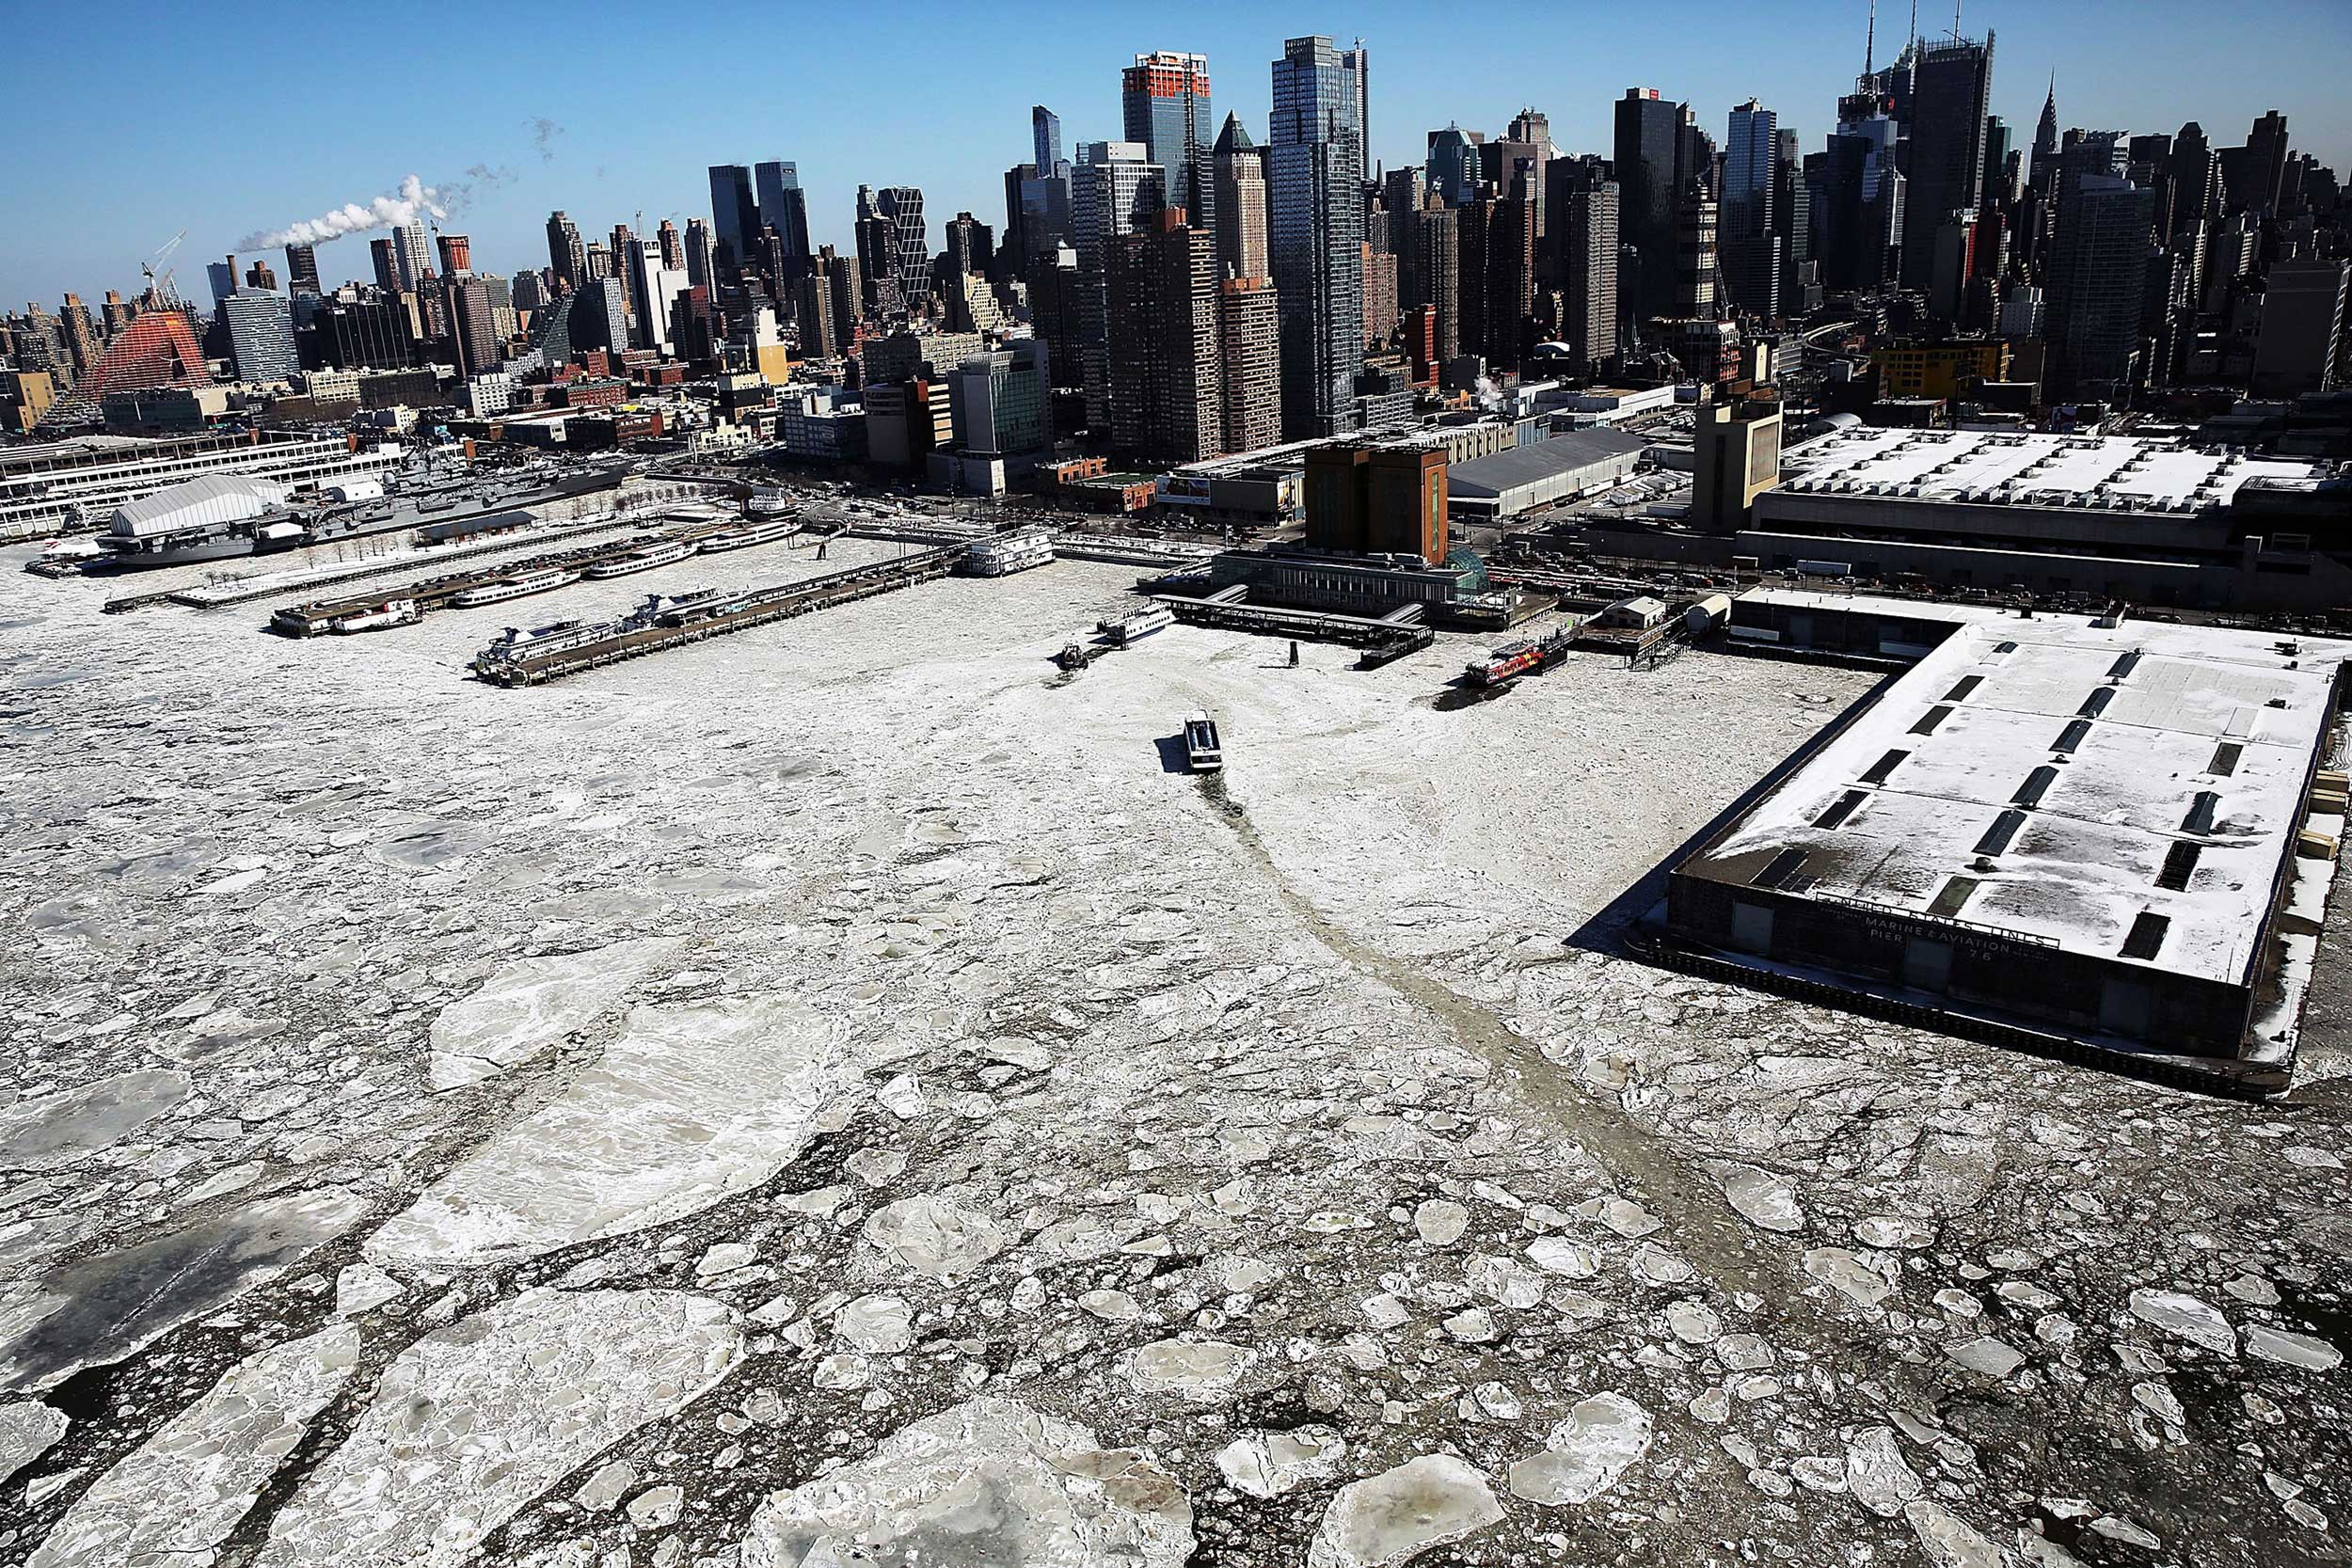 Ice floes are viewed along the Hudson River in Manhattan on a frigidly cold day in New York City on Feb. 20, 2015.